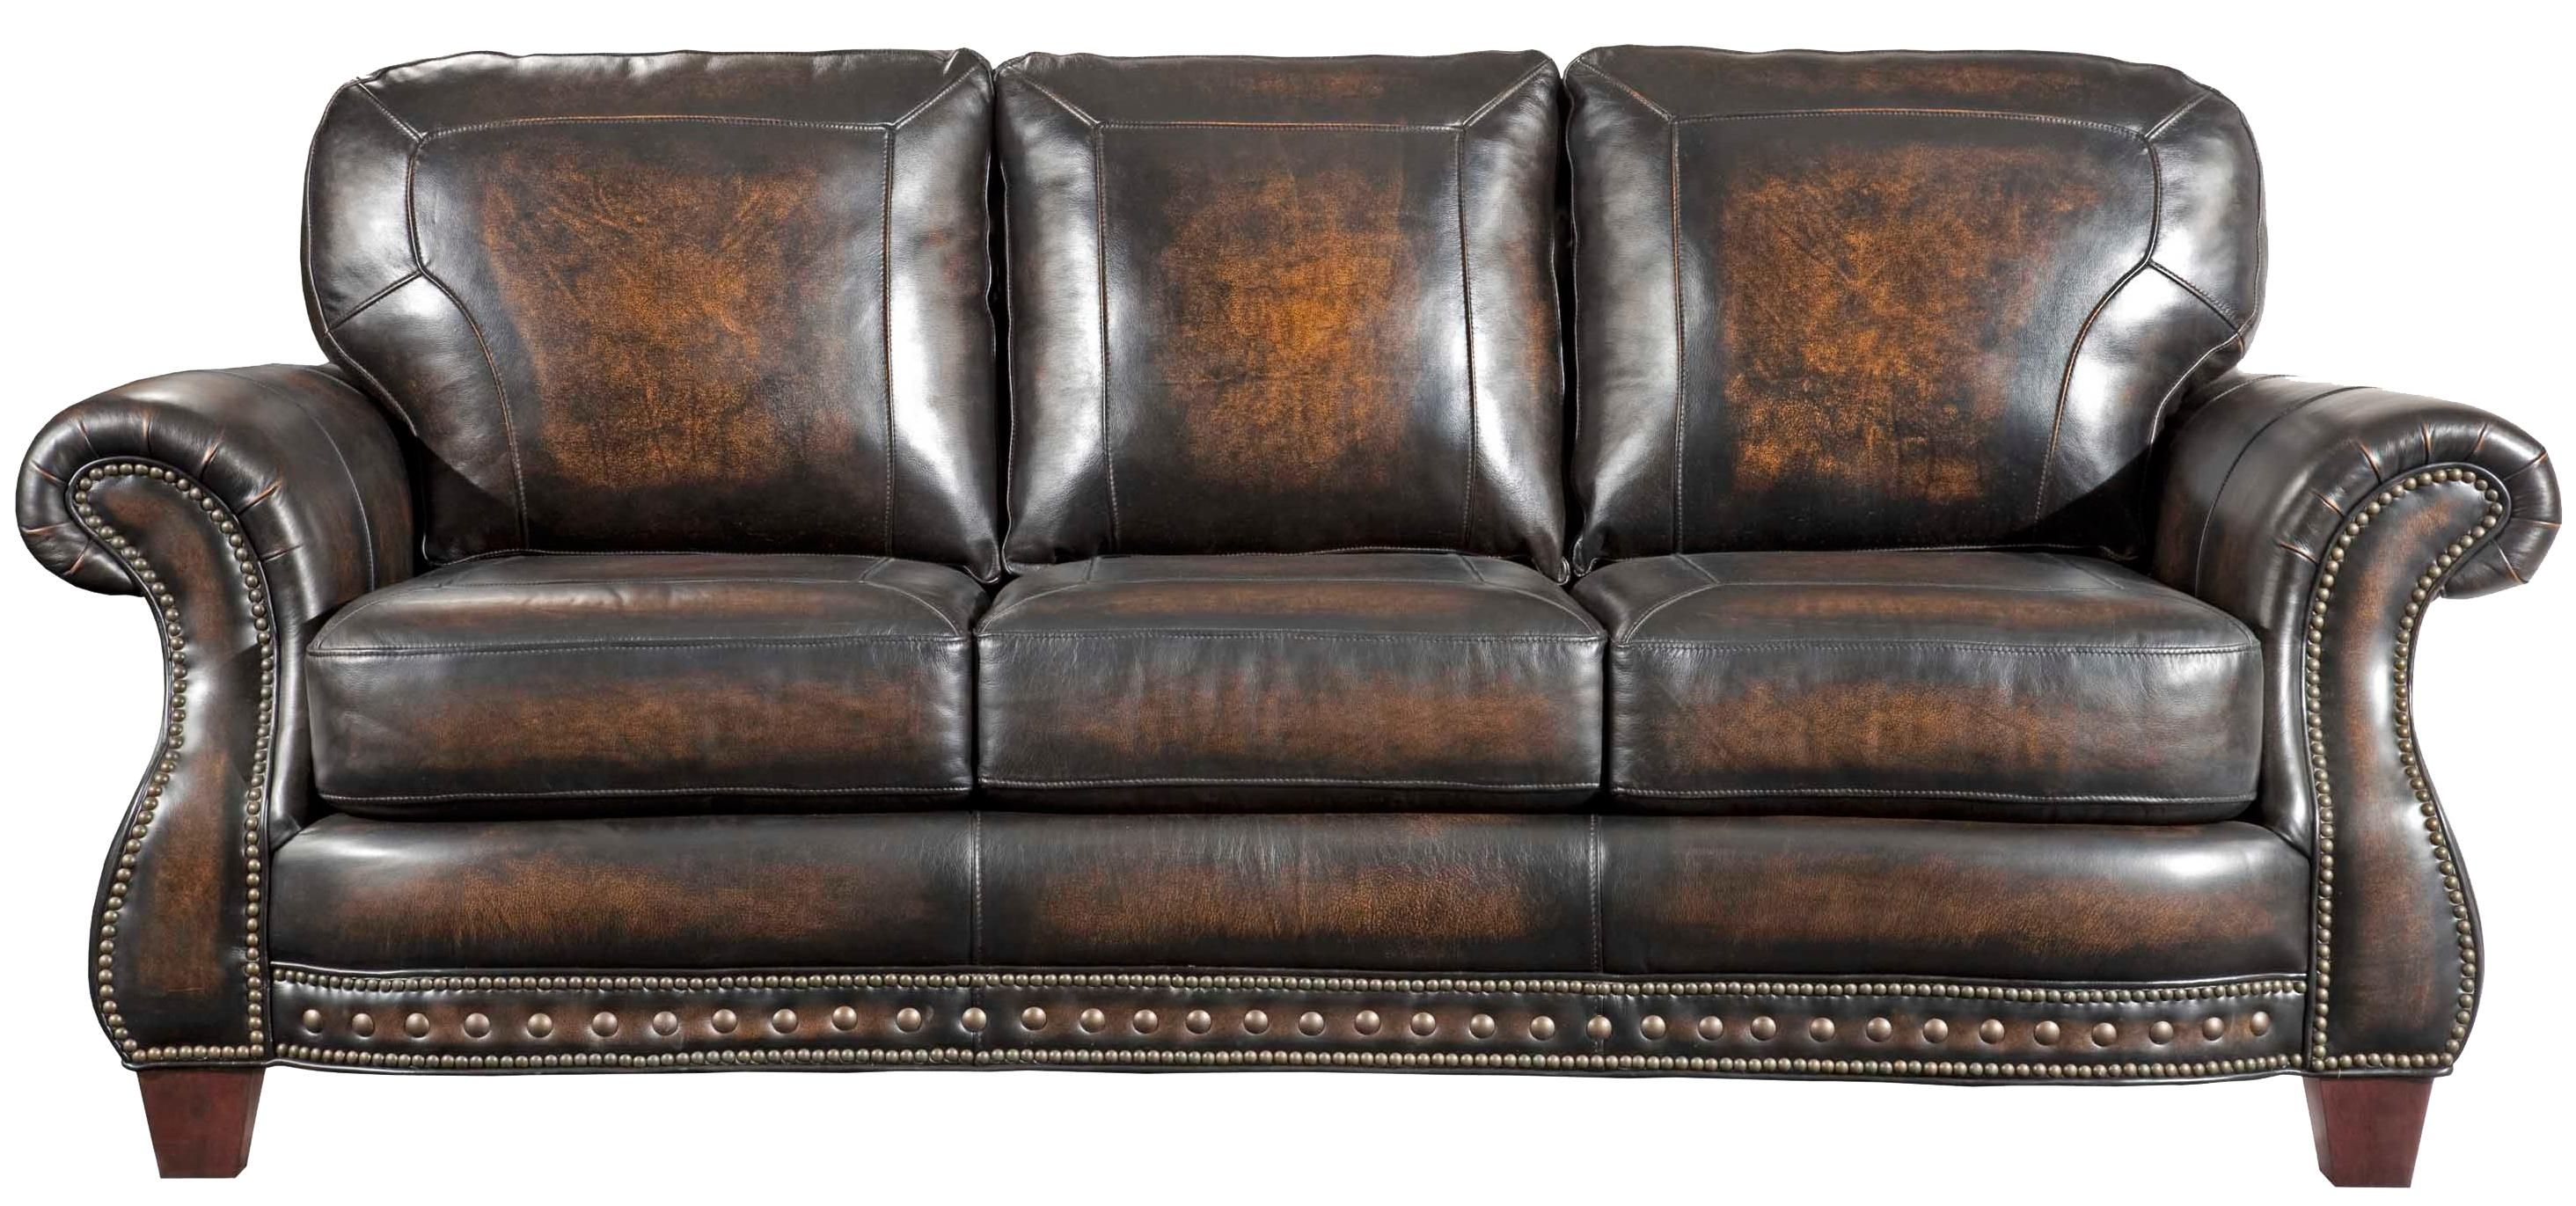 Broyhill Brown Corduroy Sofa Broyhill Leather Sofas Broyhill Leather Sofas Design Inspiration